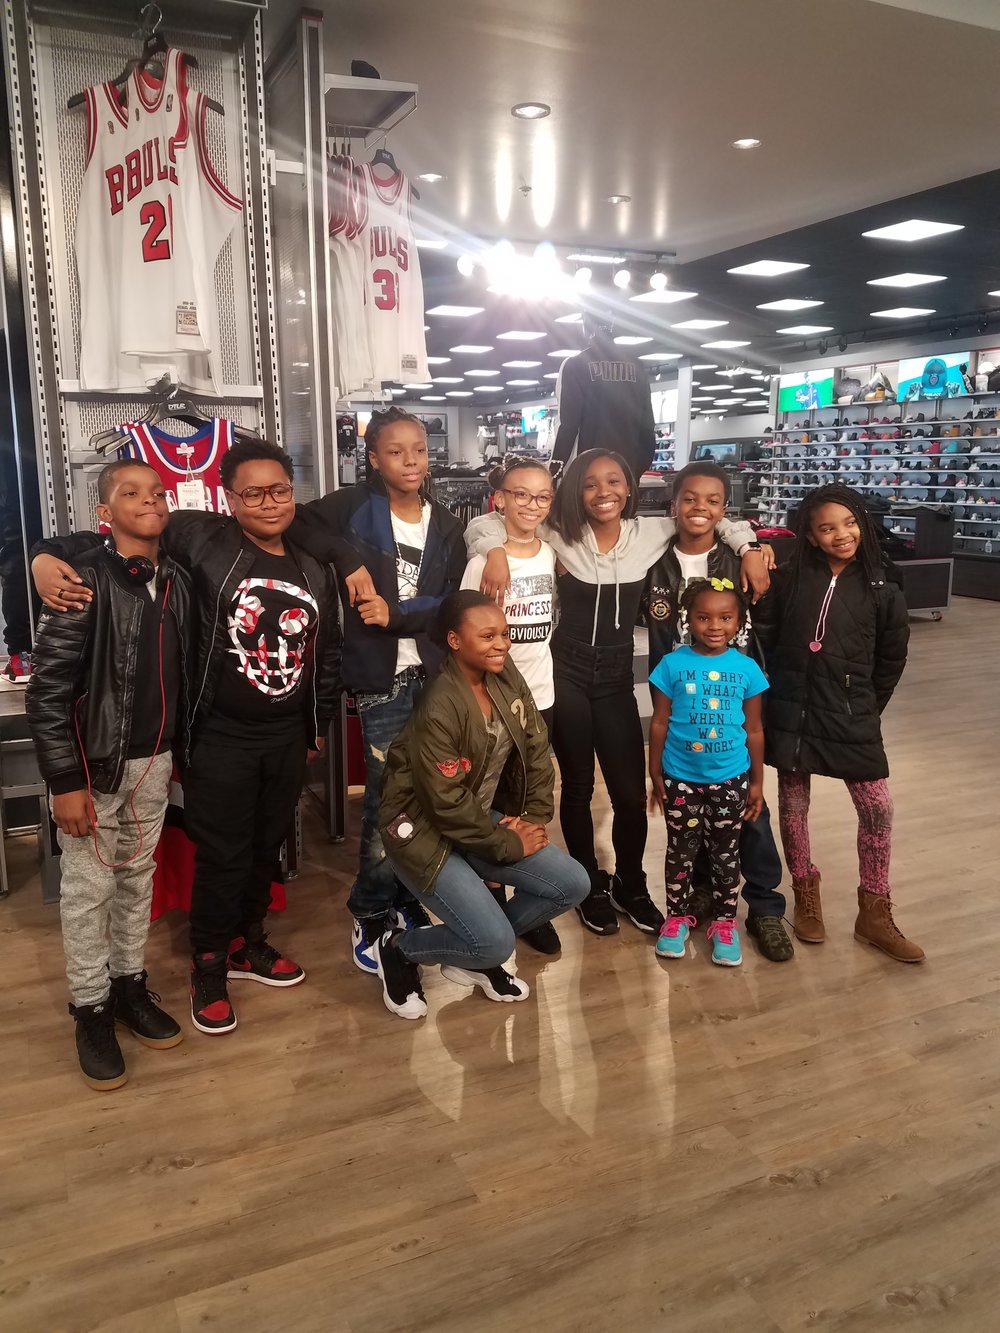 Celebrity Kidphilantrapist Jahkil Jackson, Actor Cayen Martin, The Cast of The Chi and Alyssia Duda